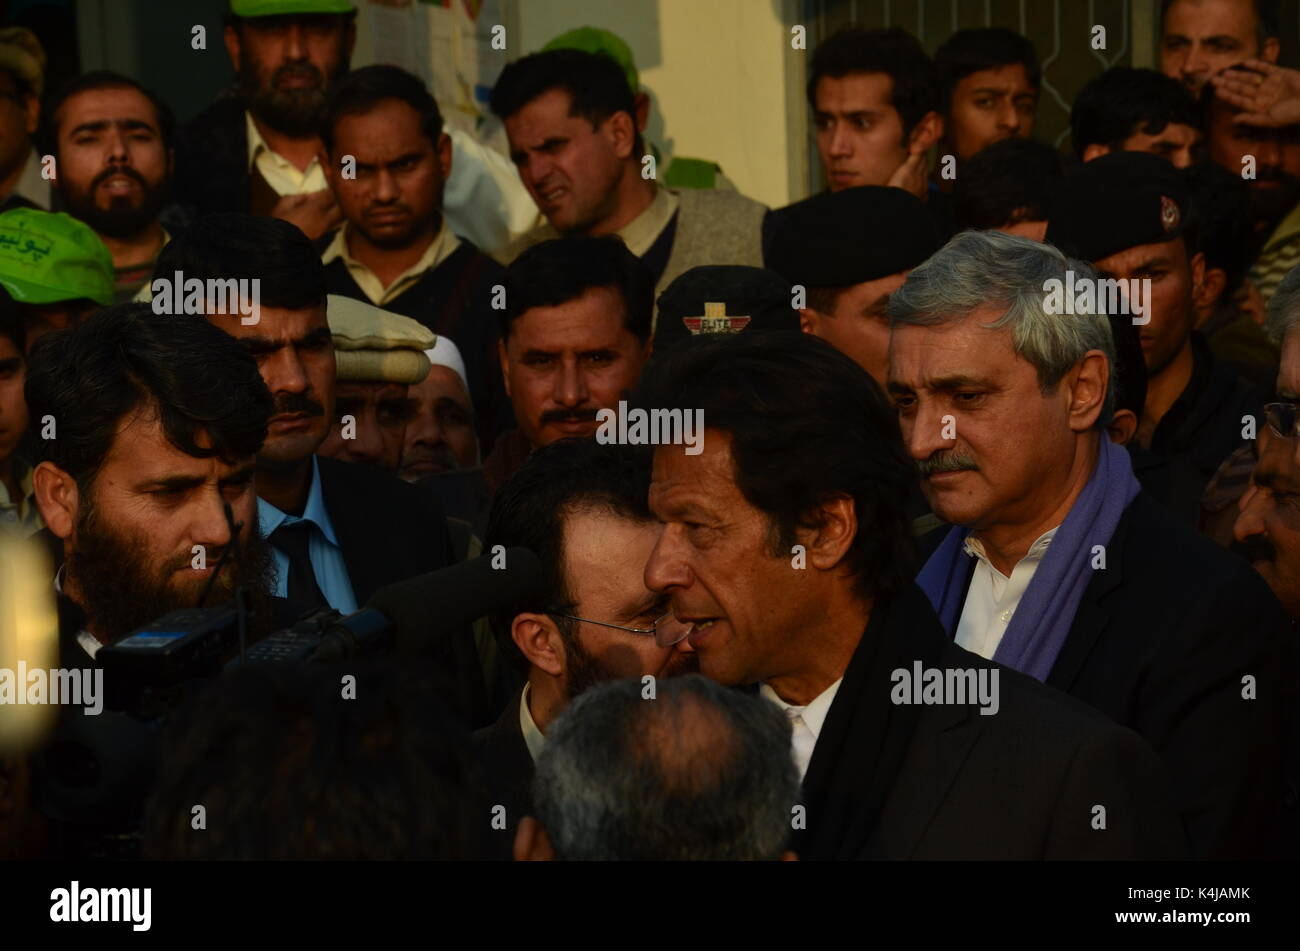 Imran Khan, leader of PTI administers polio drops to a child in Islamabad Pakistan along with KPK Chief Minister Pervez Khattak and Jahangir Tareen. - Stock Image